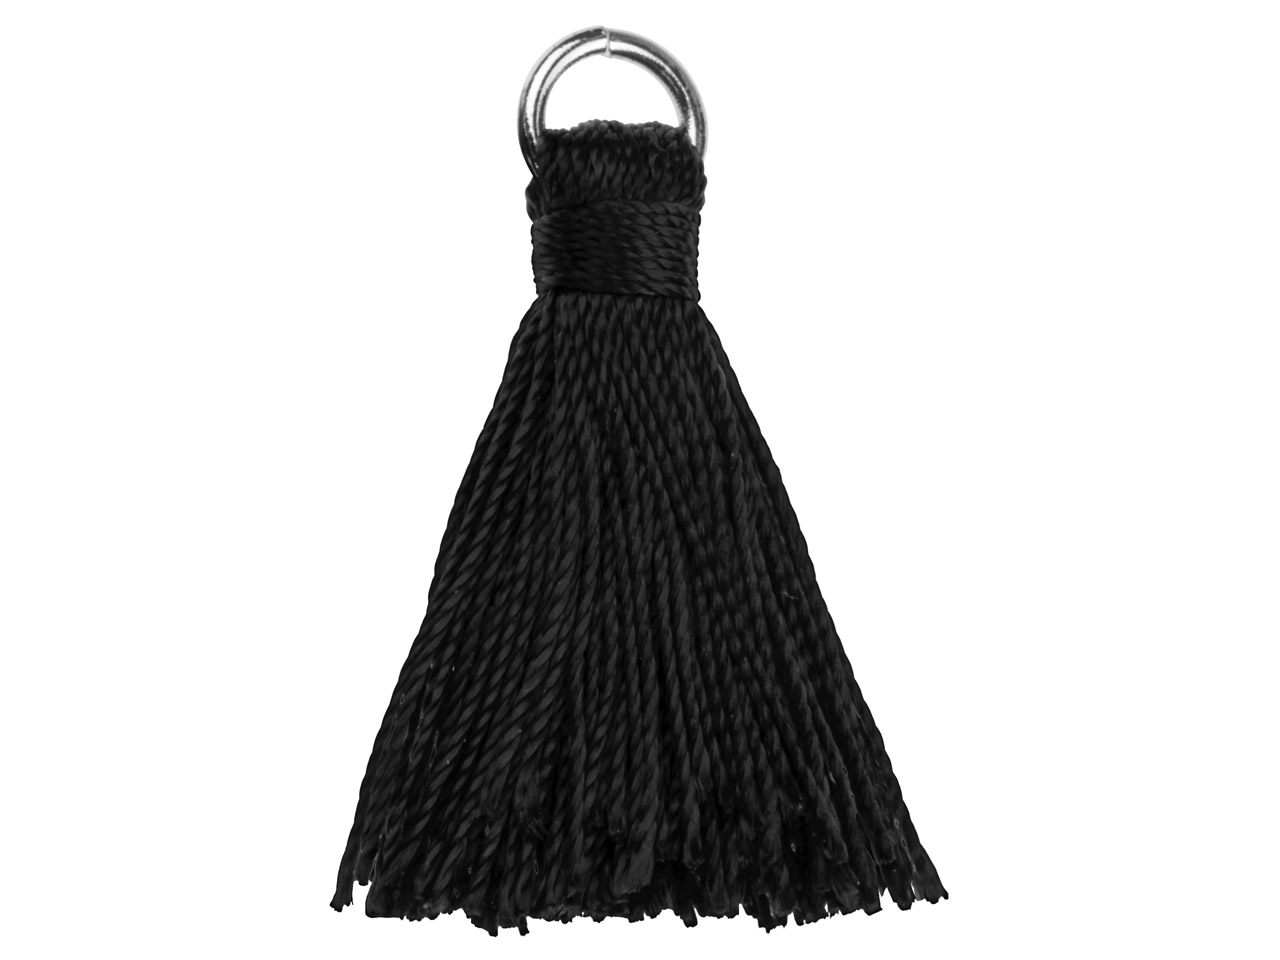 Black Nylon Tassel With Silver     Plated Jump Ring Pack of 5